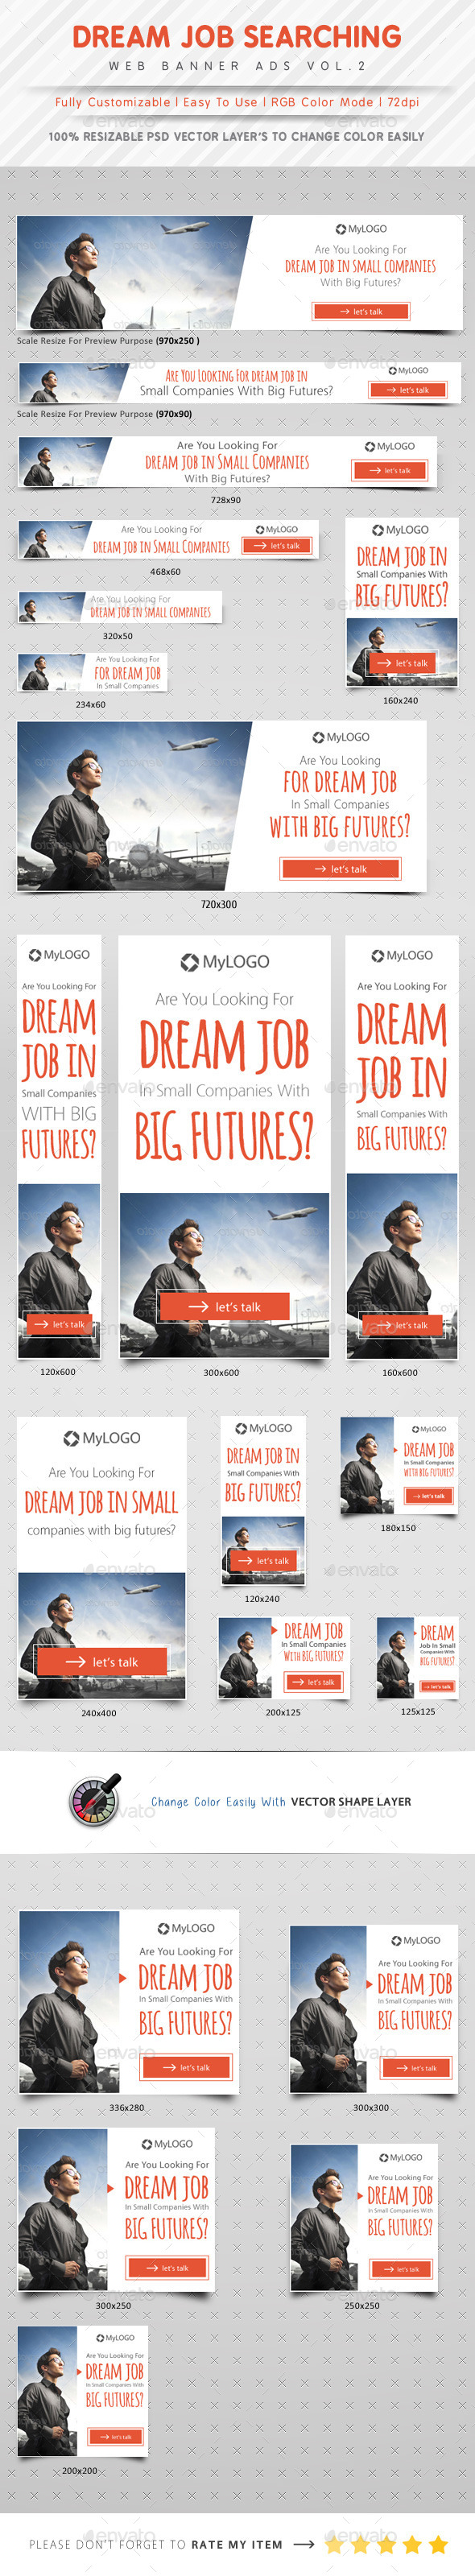 Job Searching Web Banner Ads Vol.2 - Banners & Ads Web Elements